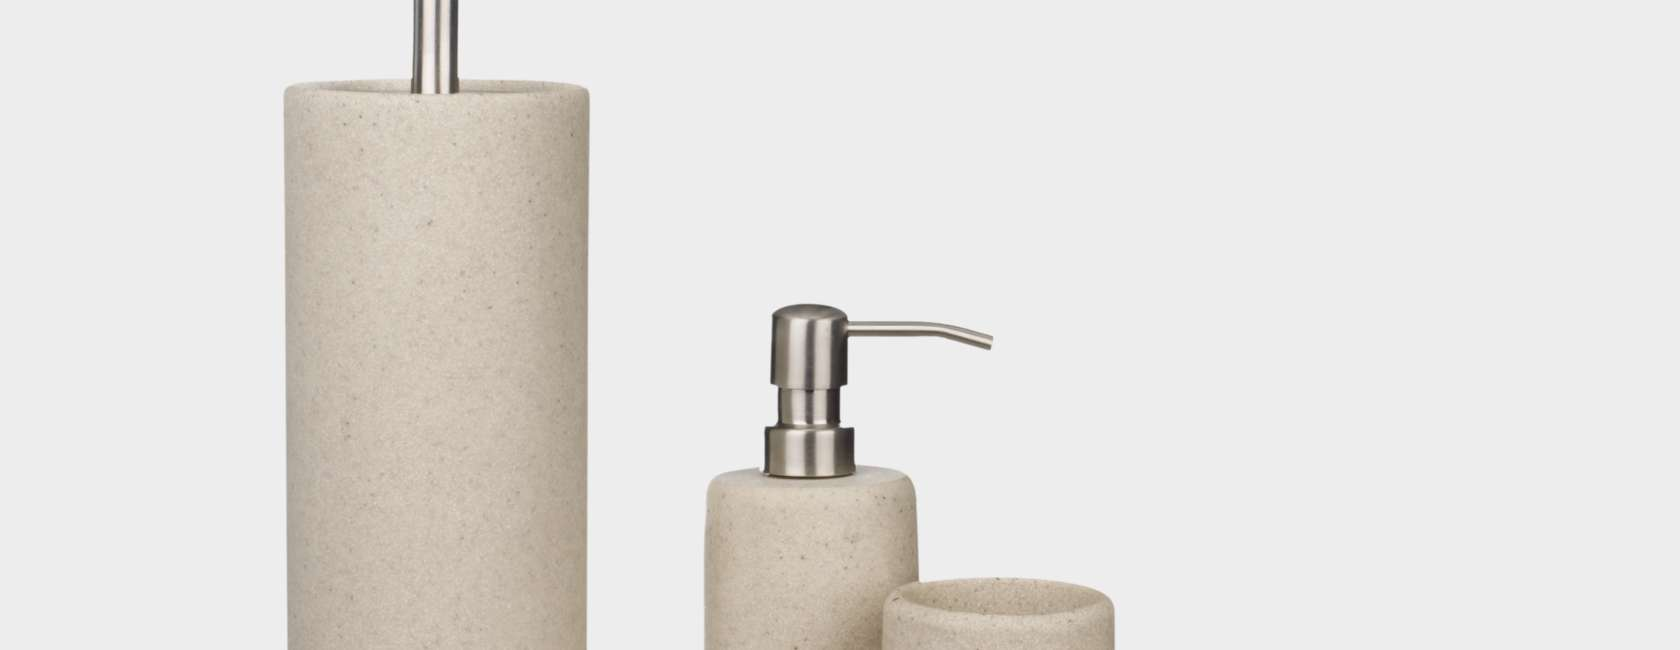 John Lewis & Partners Dune Bathroom Accessories at John Lewis & Partners